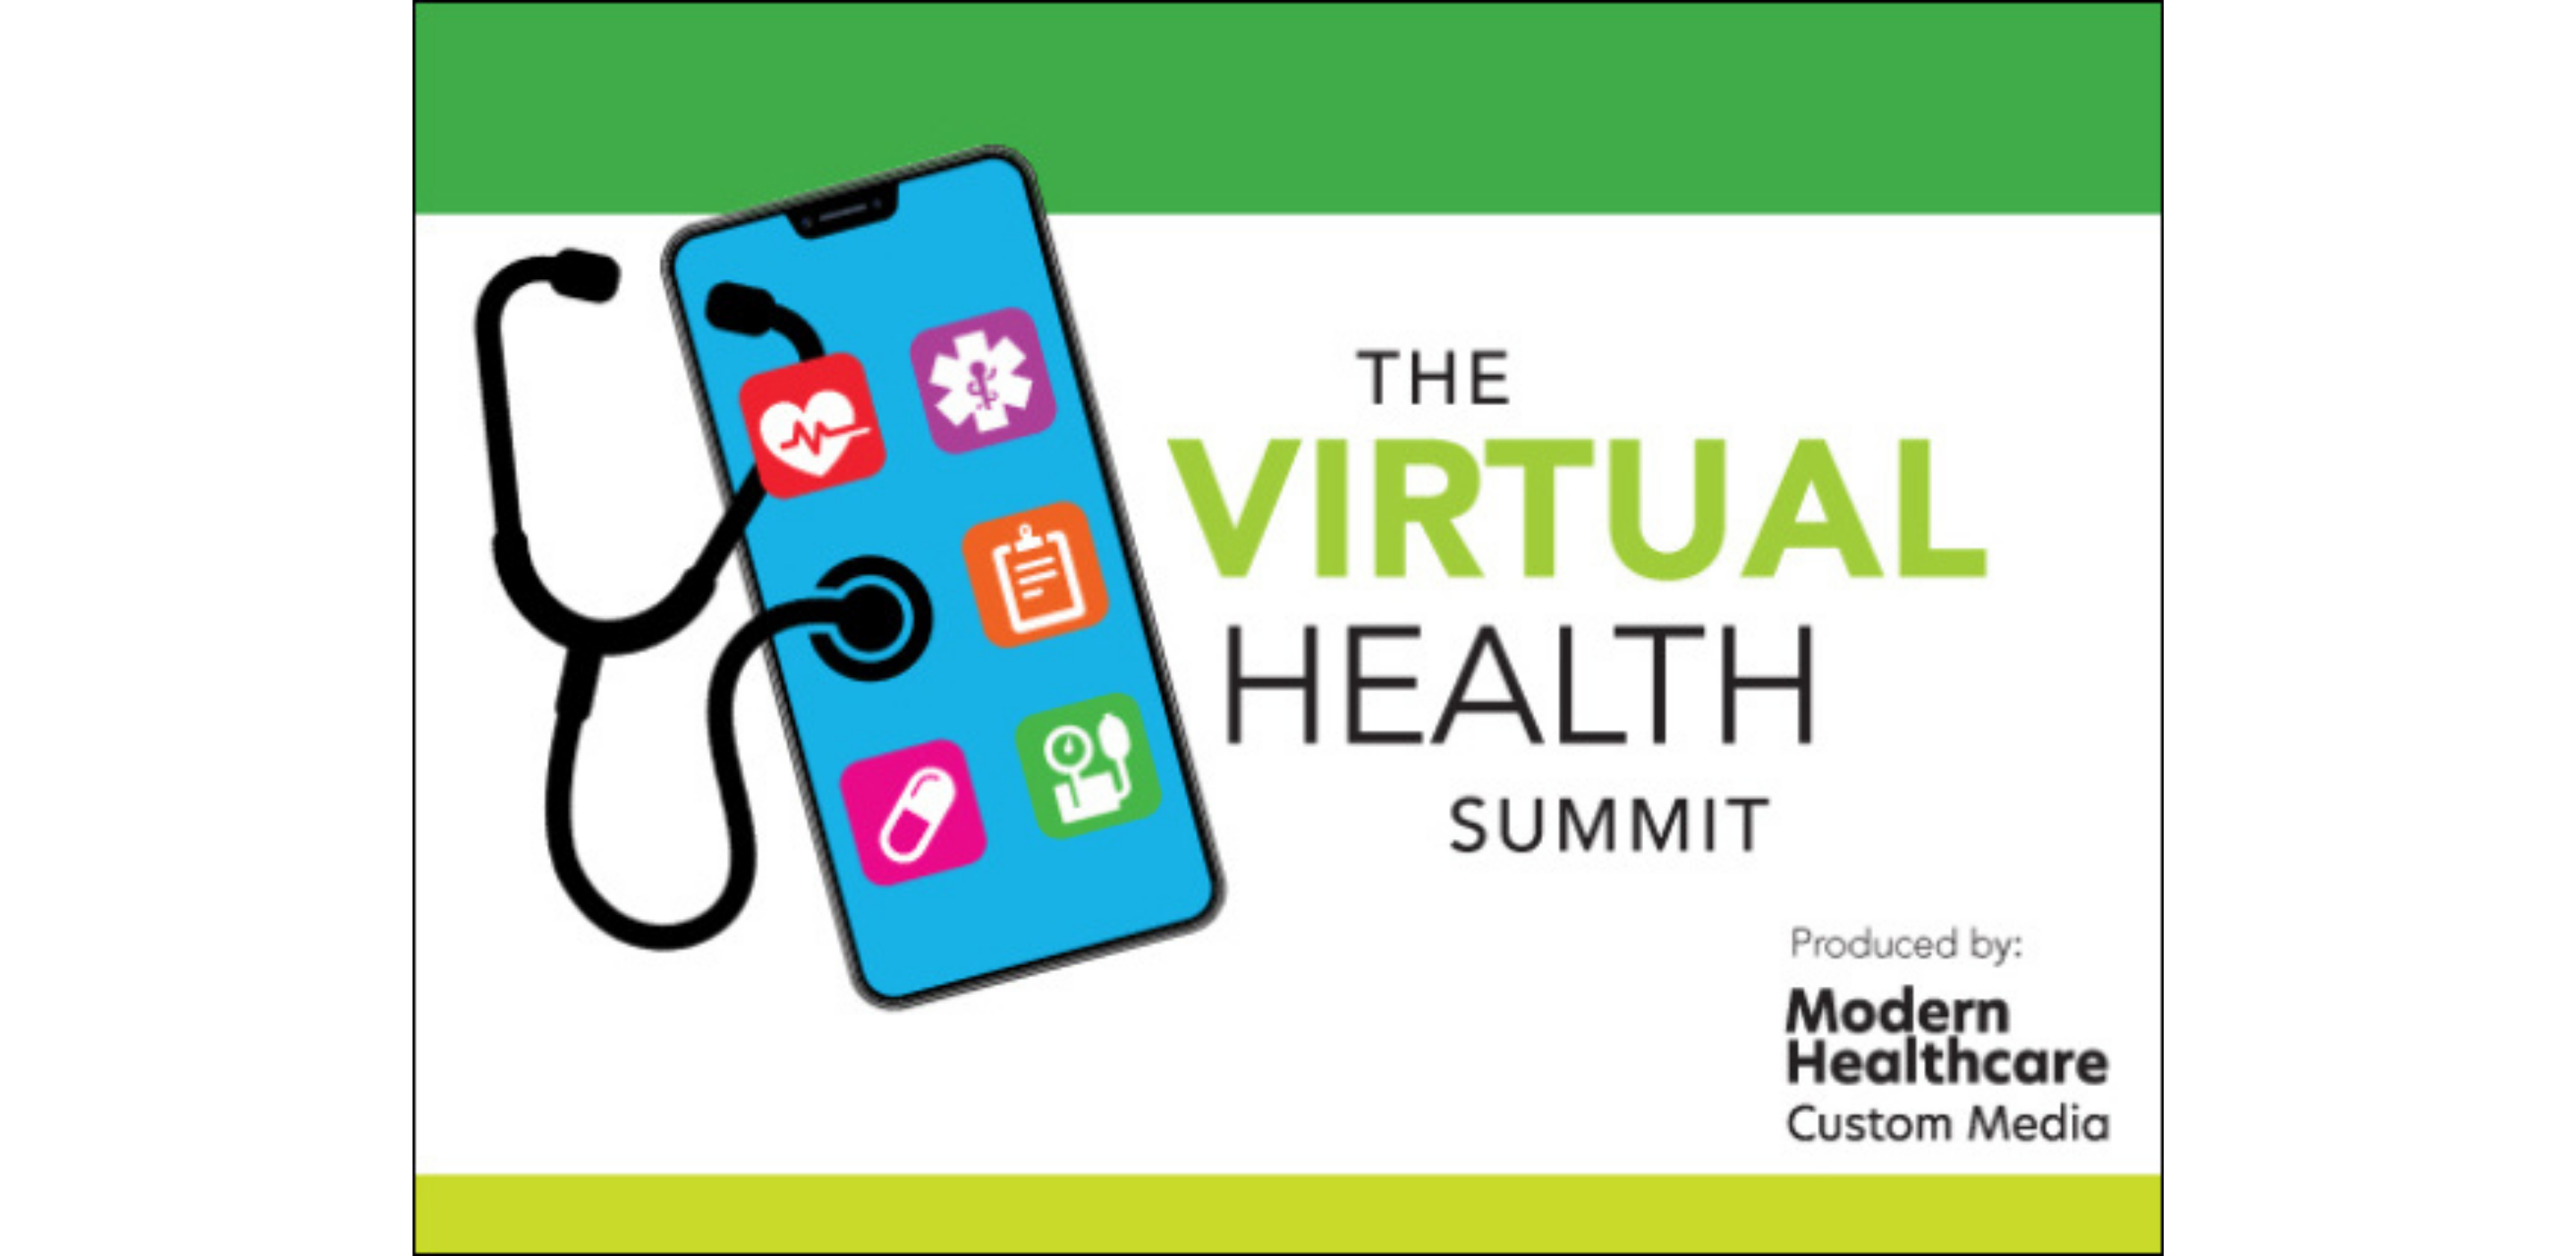 The Virtual Health